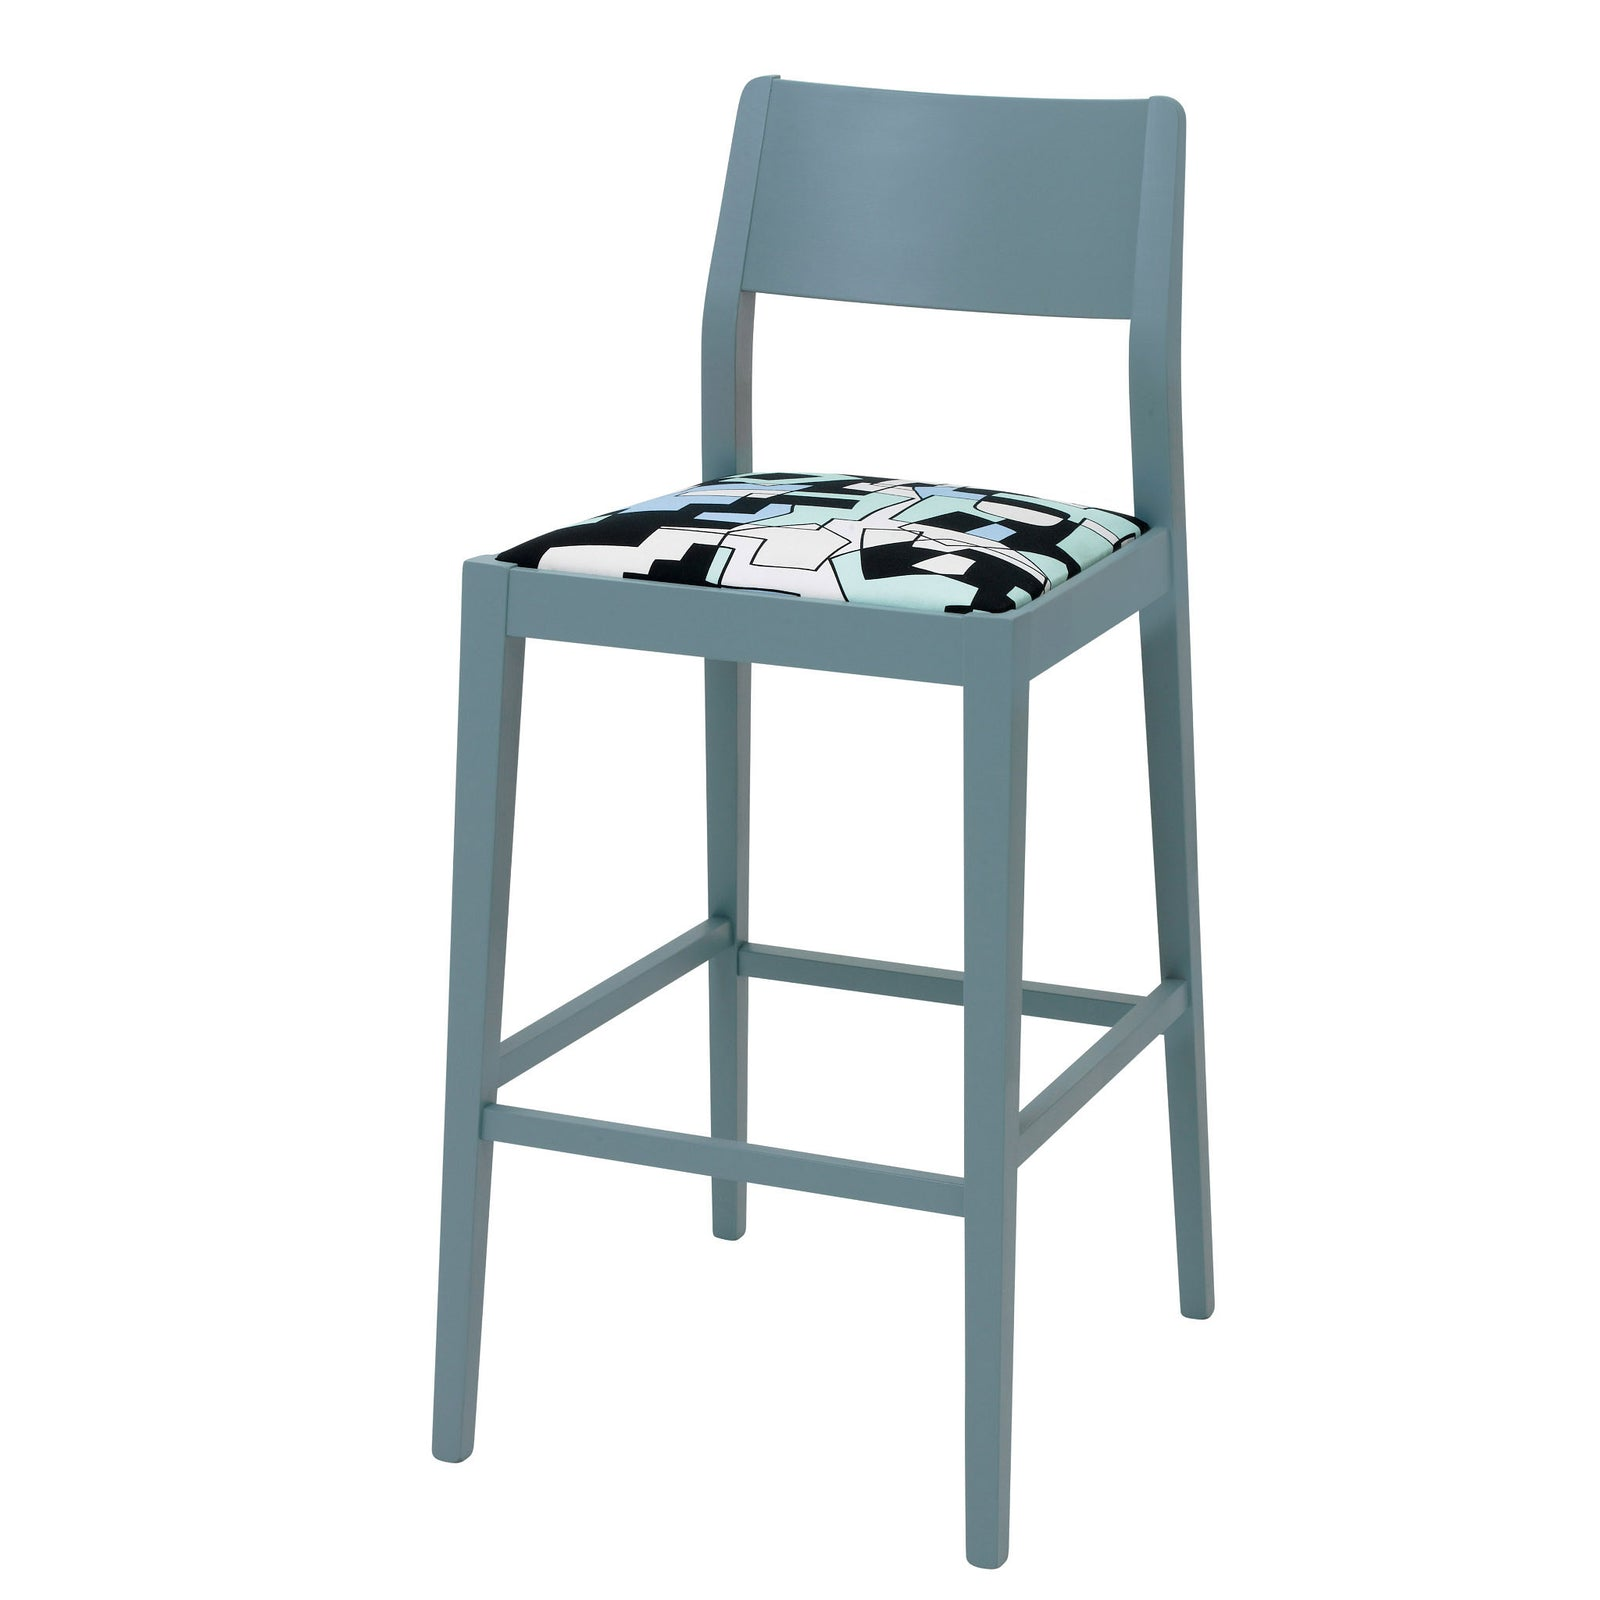 Bar Stool in Oval Room Blue NeoGeo from Jon Burgerman ...